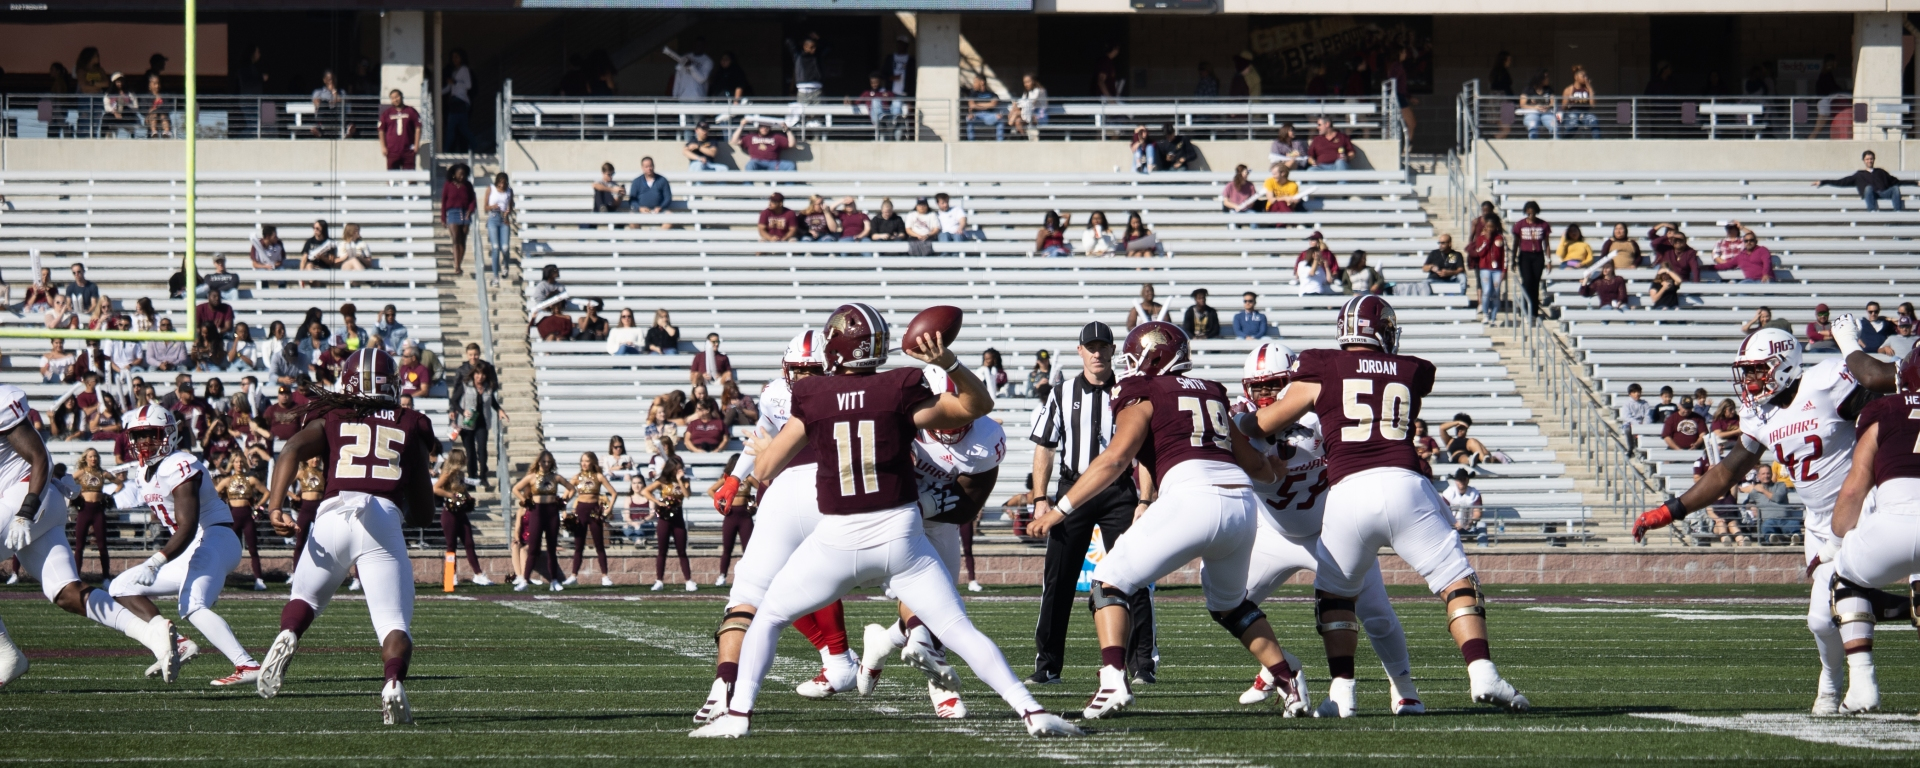 Quarterback Tyler Vitt is throwing the football off to the left behind his offensive line.